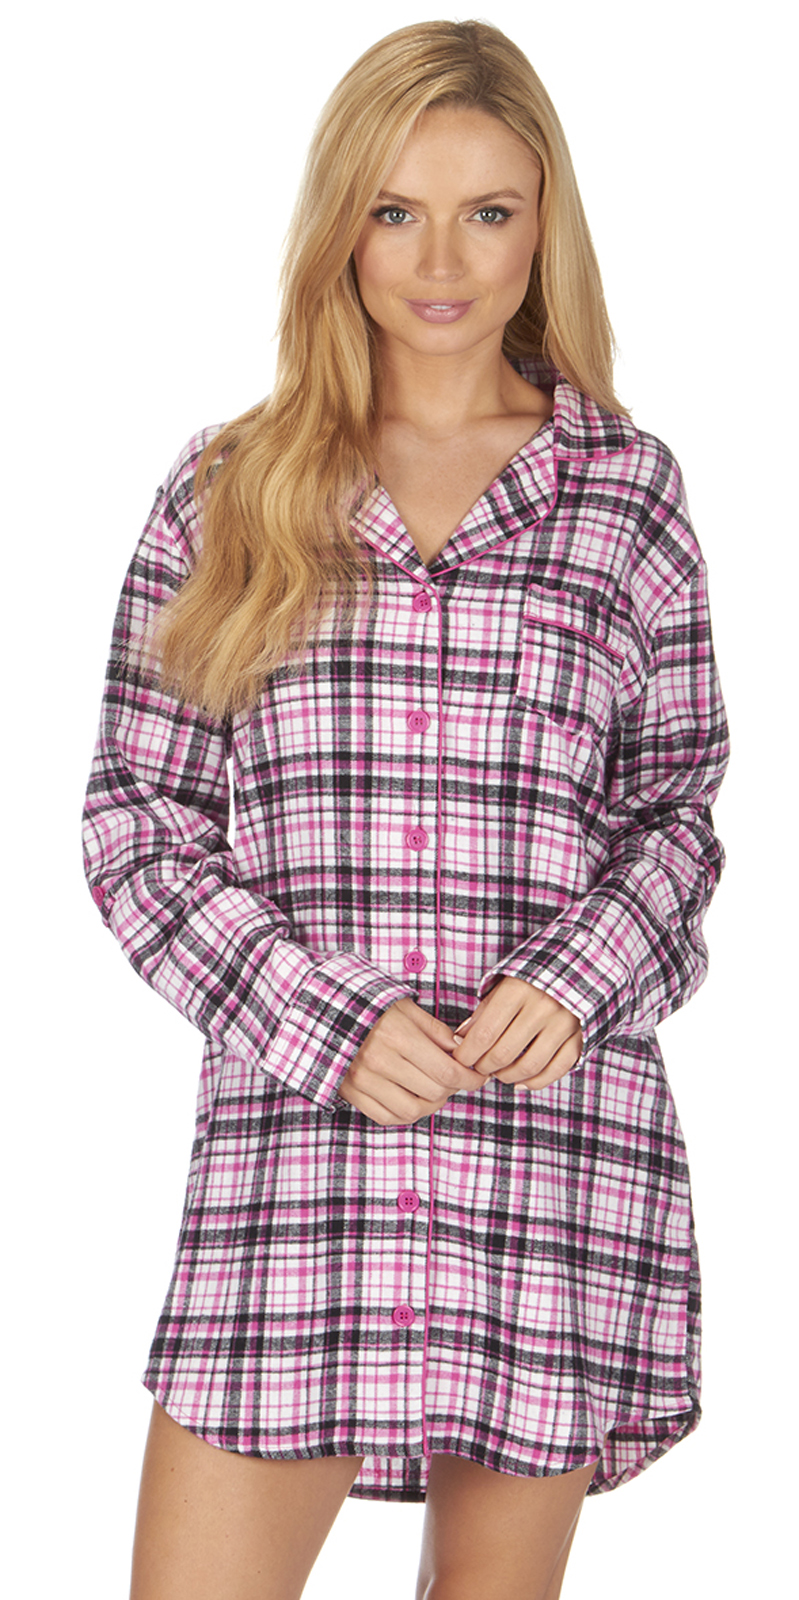 ladies night dress pyjamas - photo #10